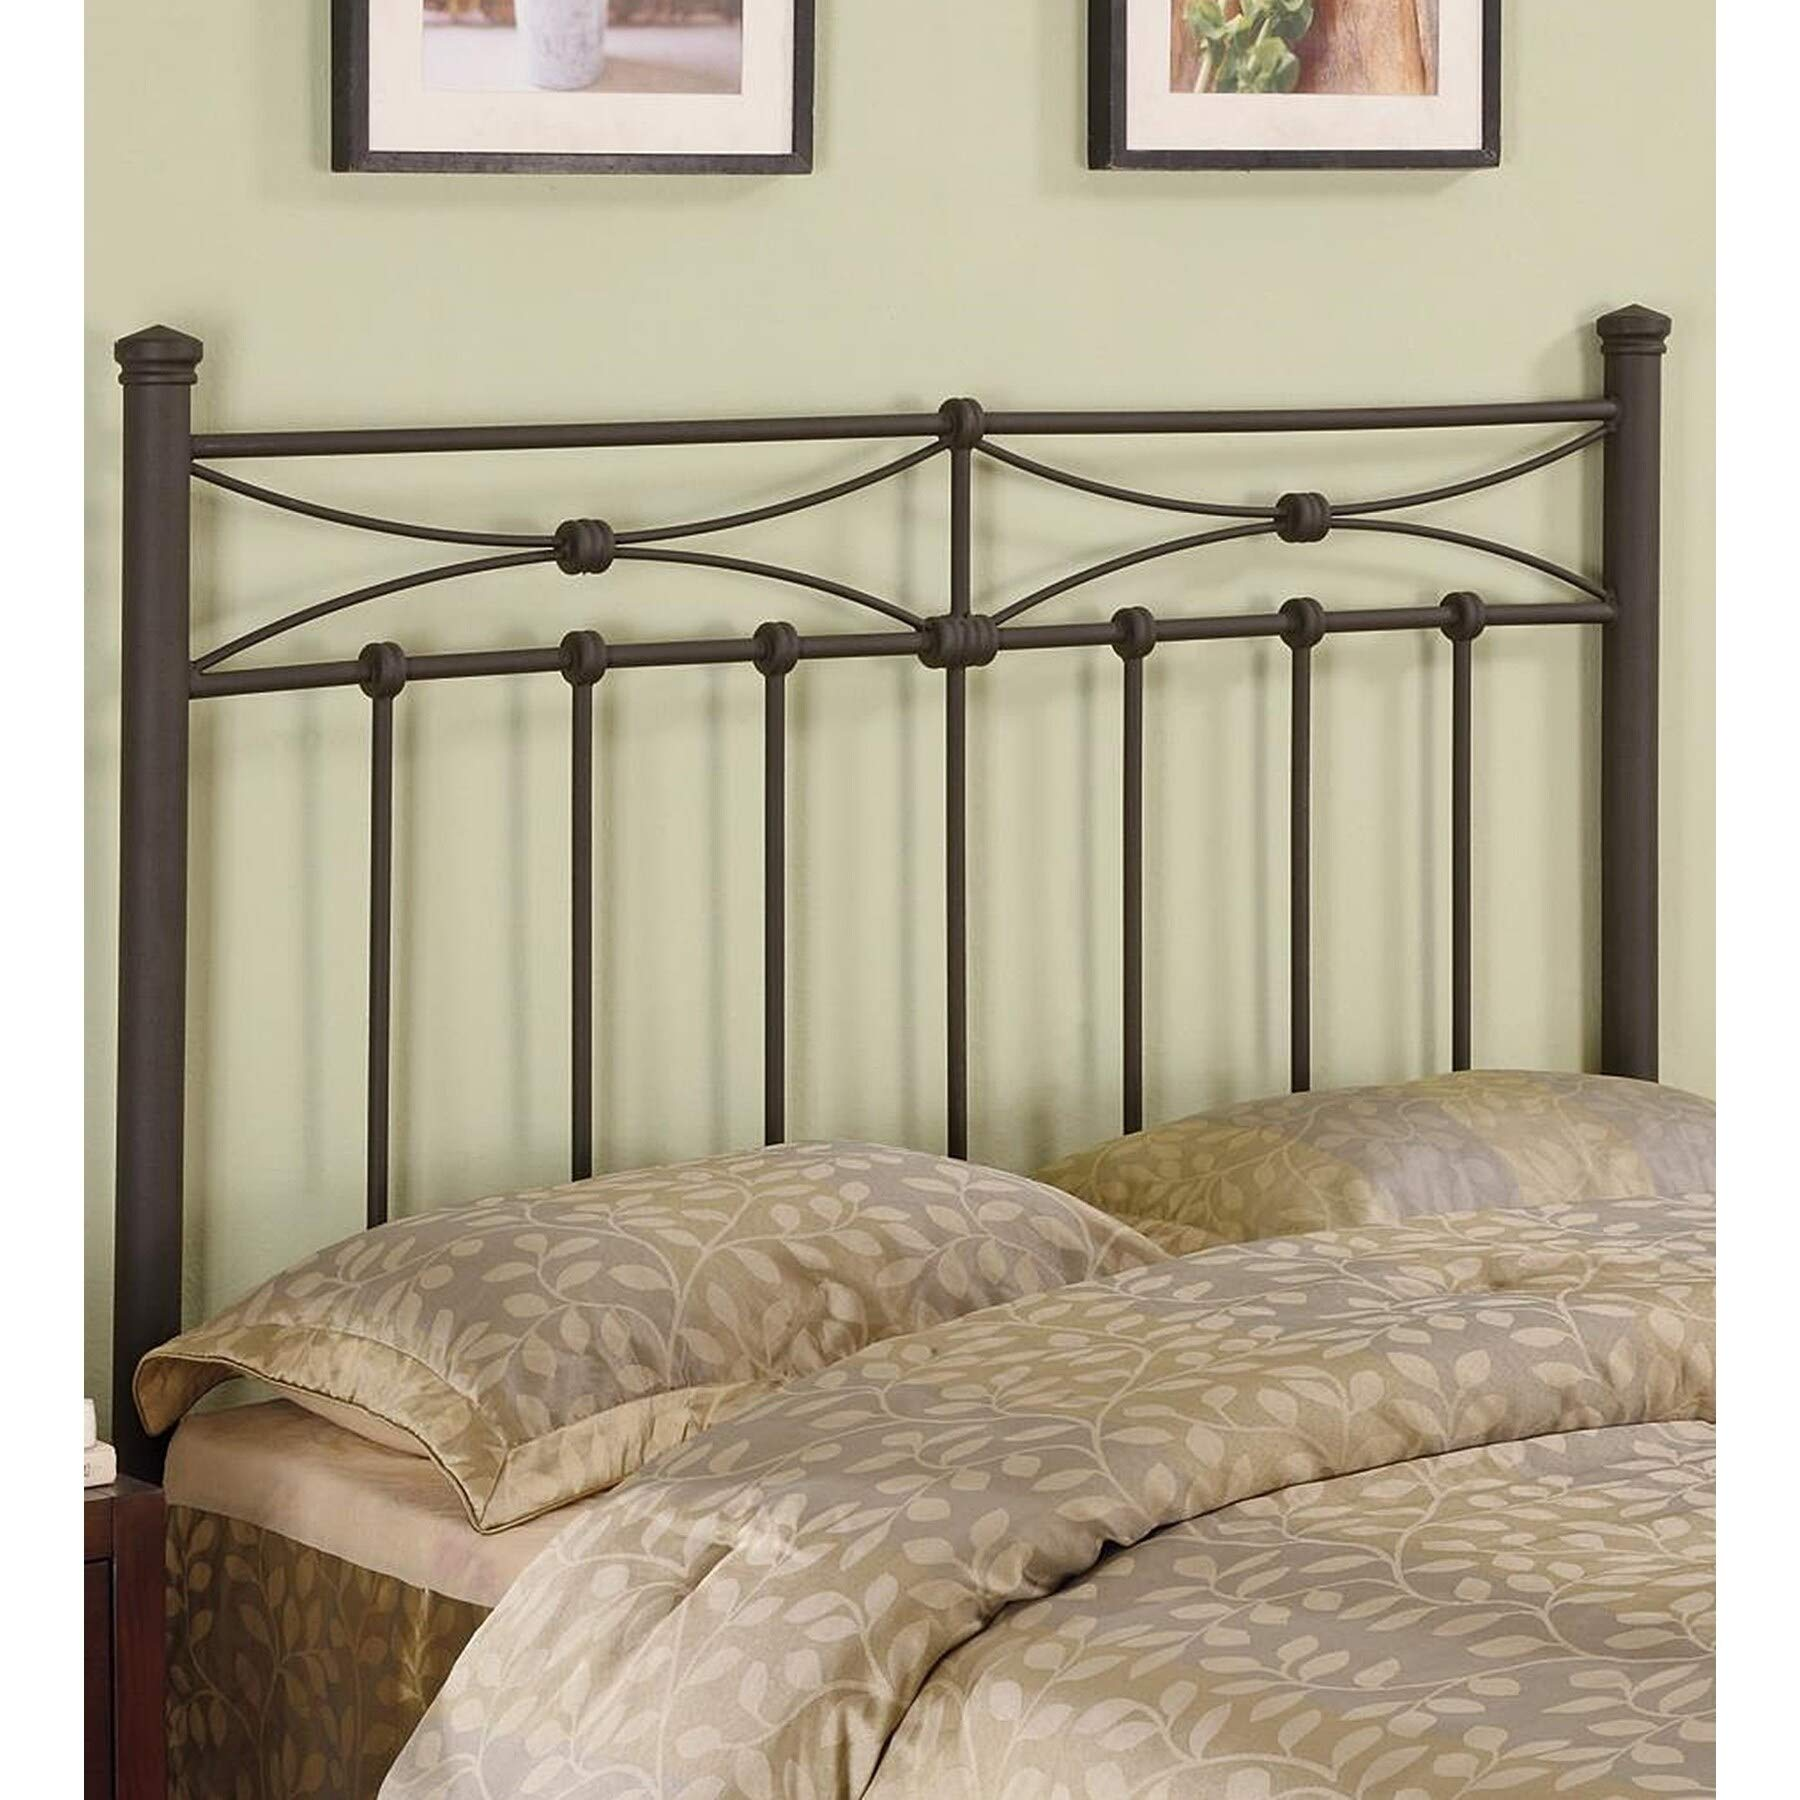 Duxbury Slatted Full/Queen Metal Headboard Brown Modern Contemporary Traditional Bronze Finish by Unknown